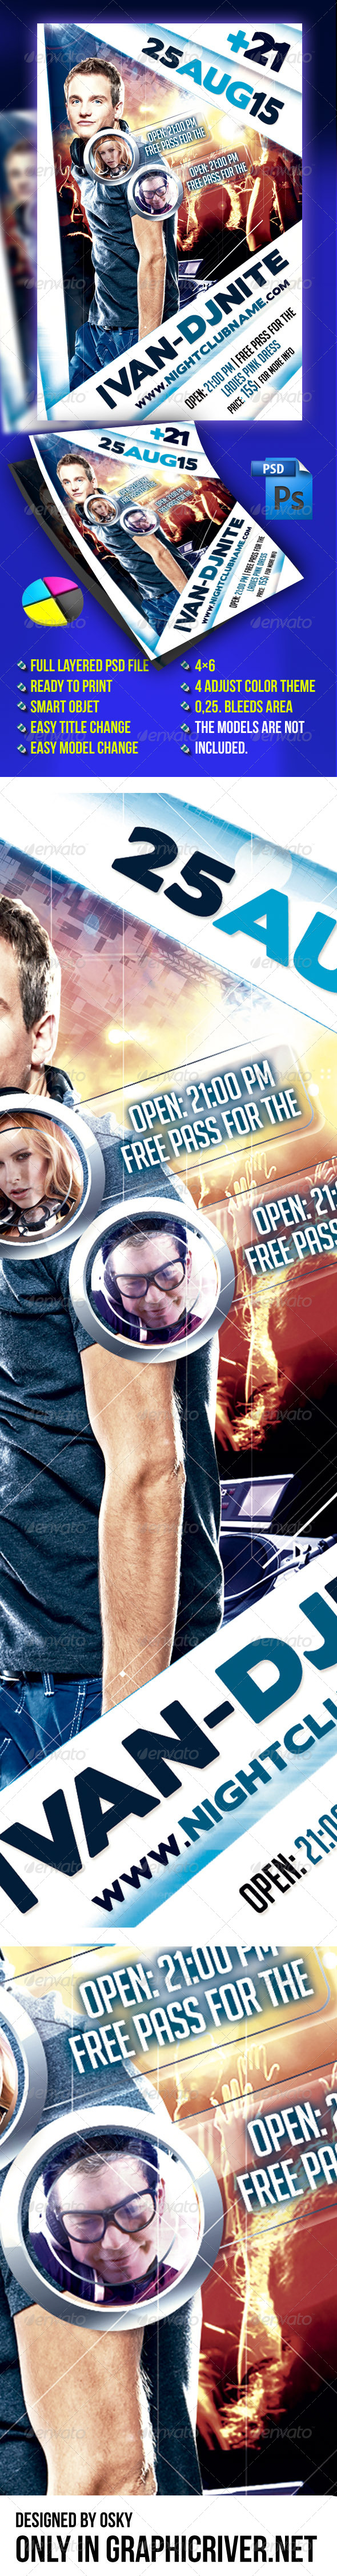 GraphicRiver Dj Event VIII 5102336